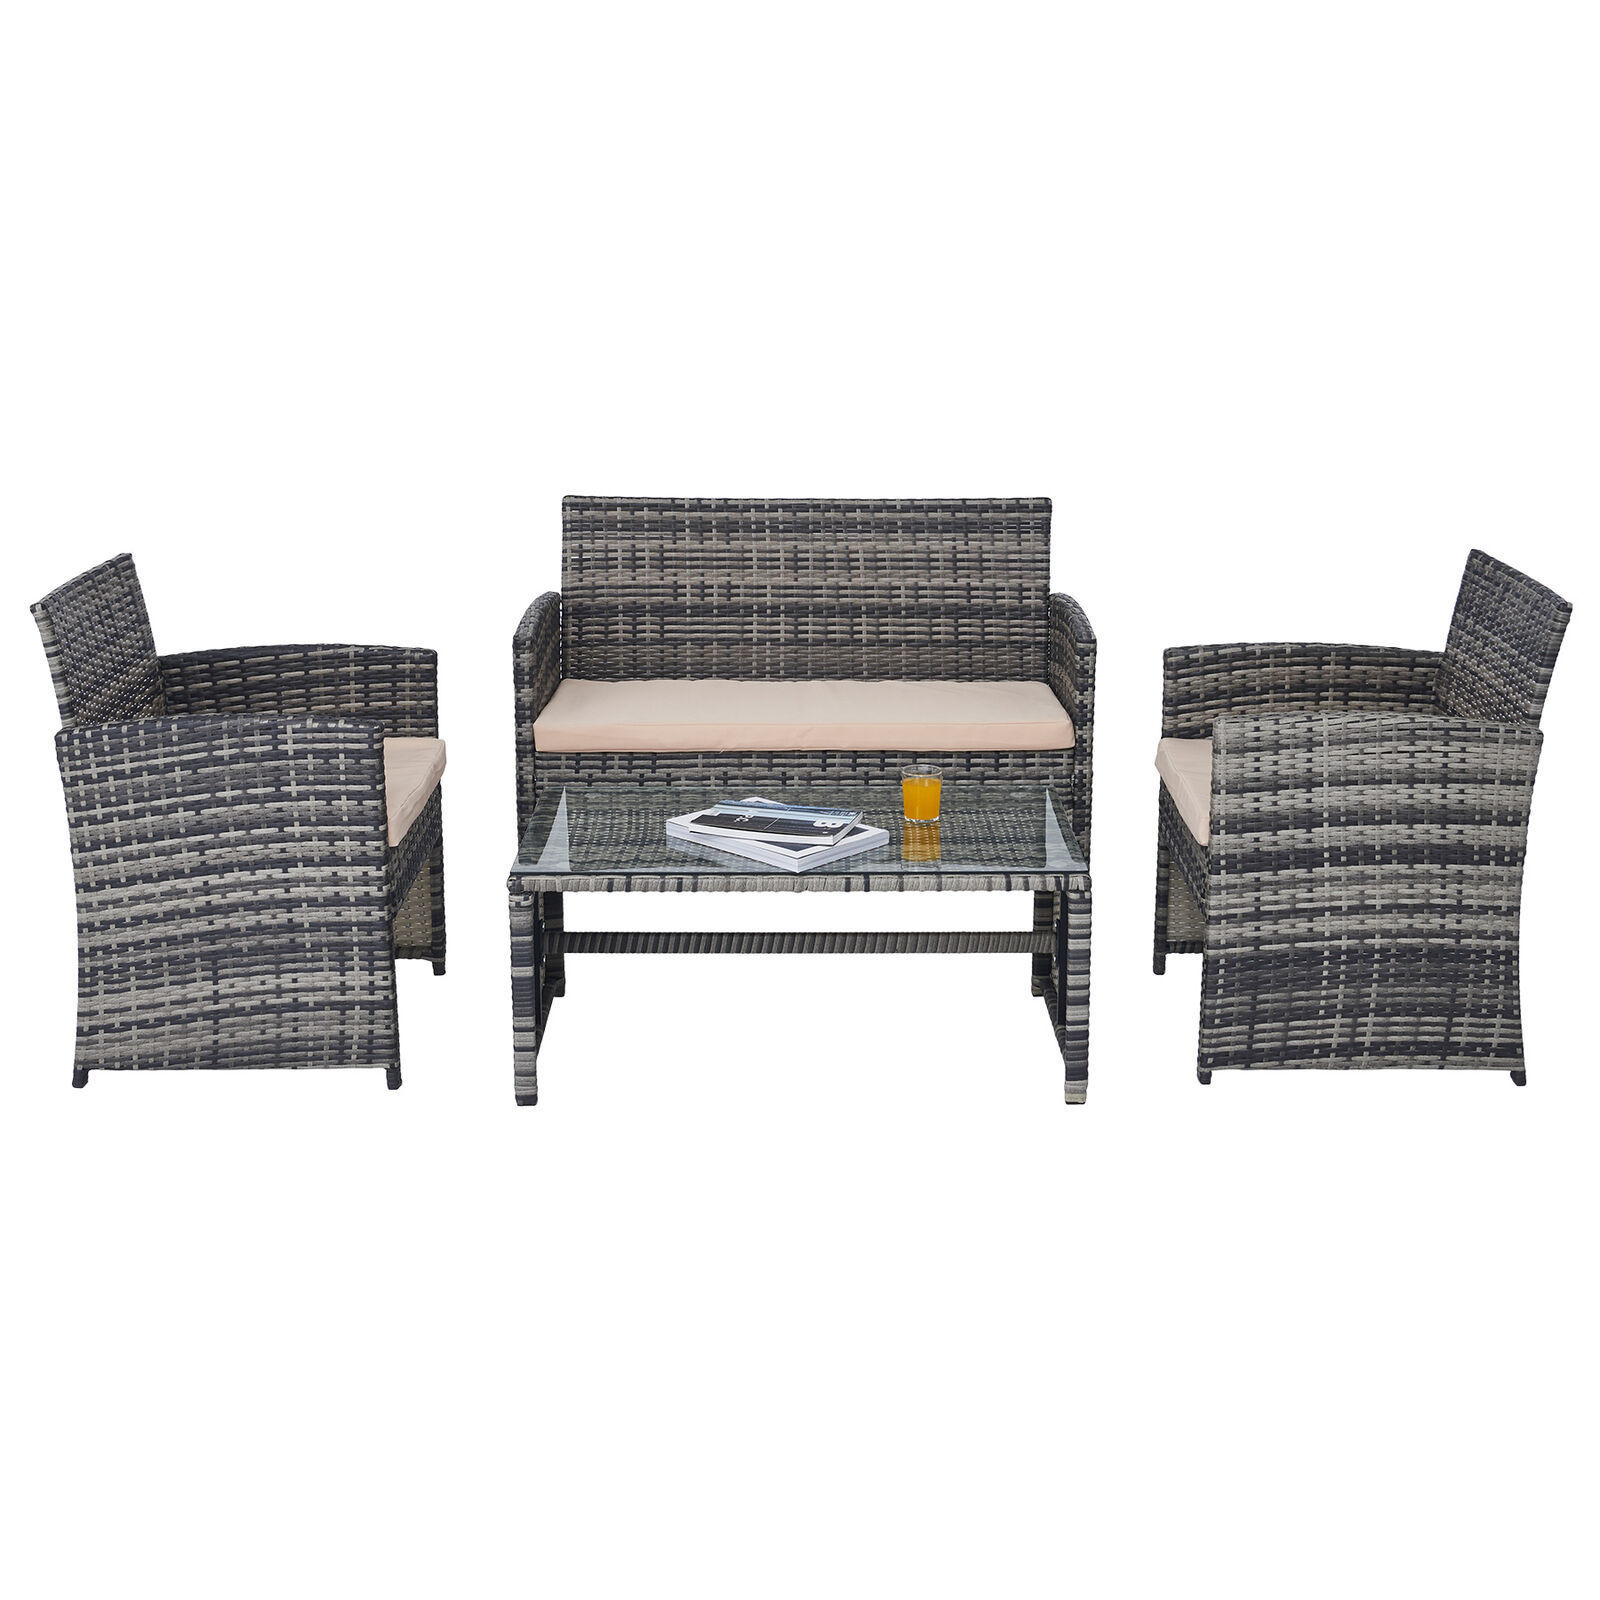 Picture of Outdoor Furniture Set - 4 pc Gray